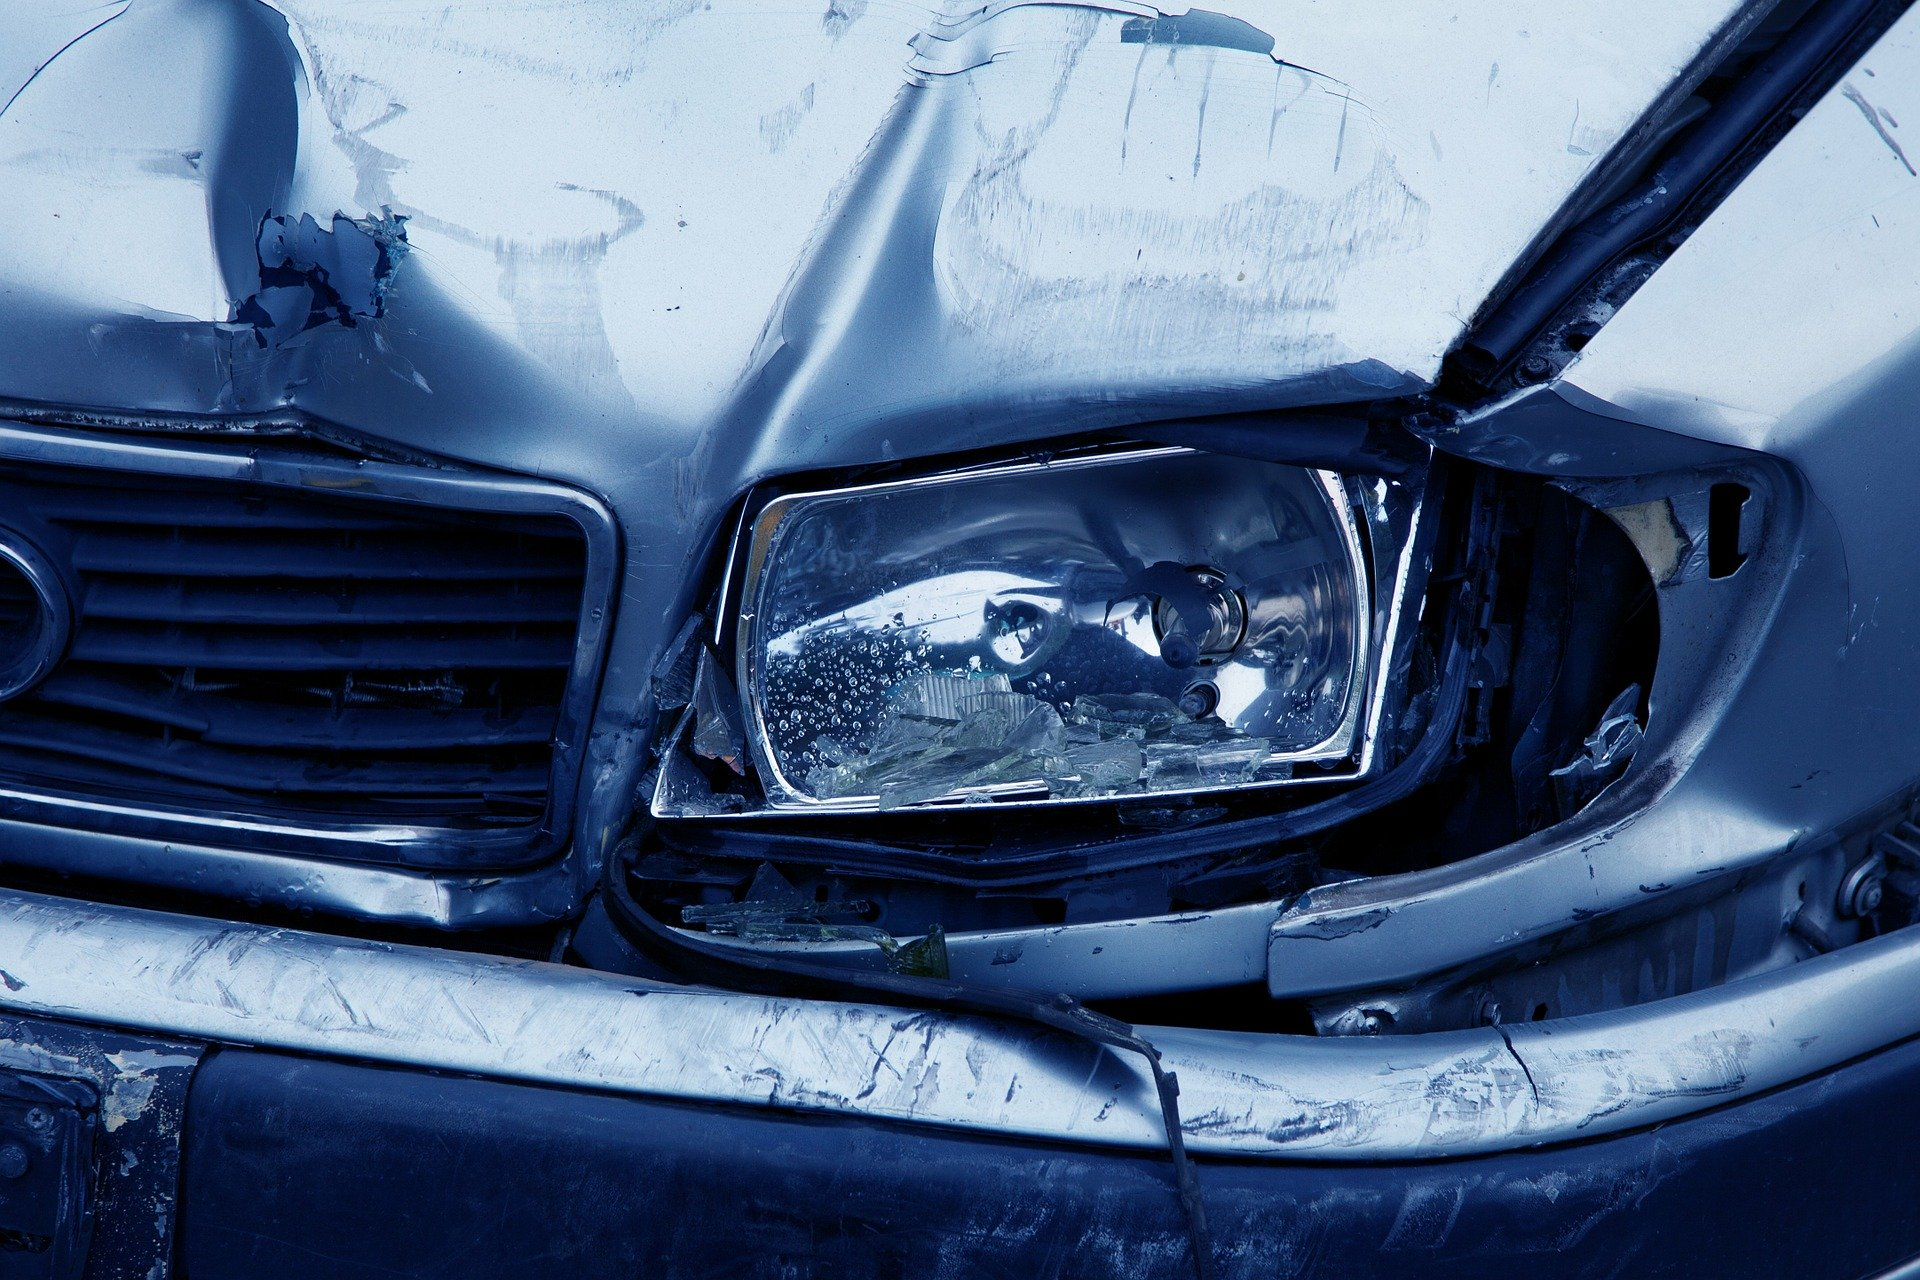 What to do in case you are a victim of a car accident